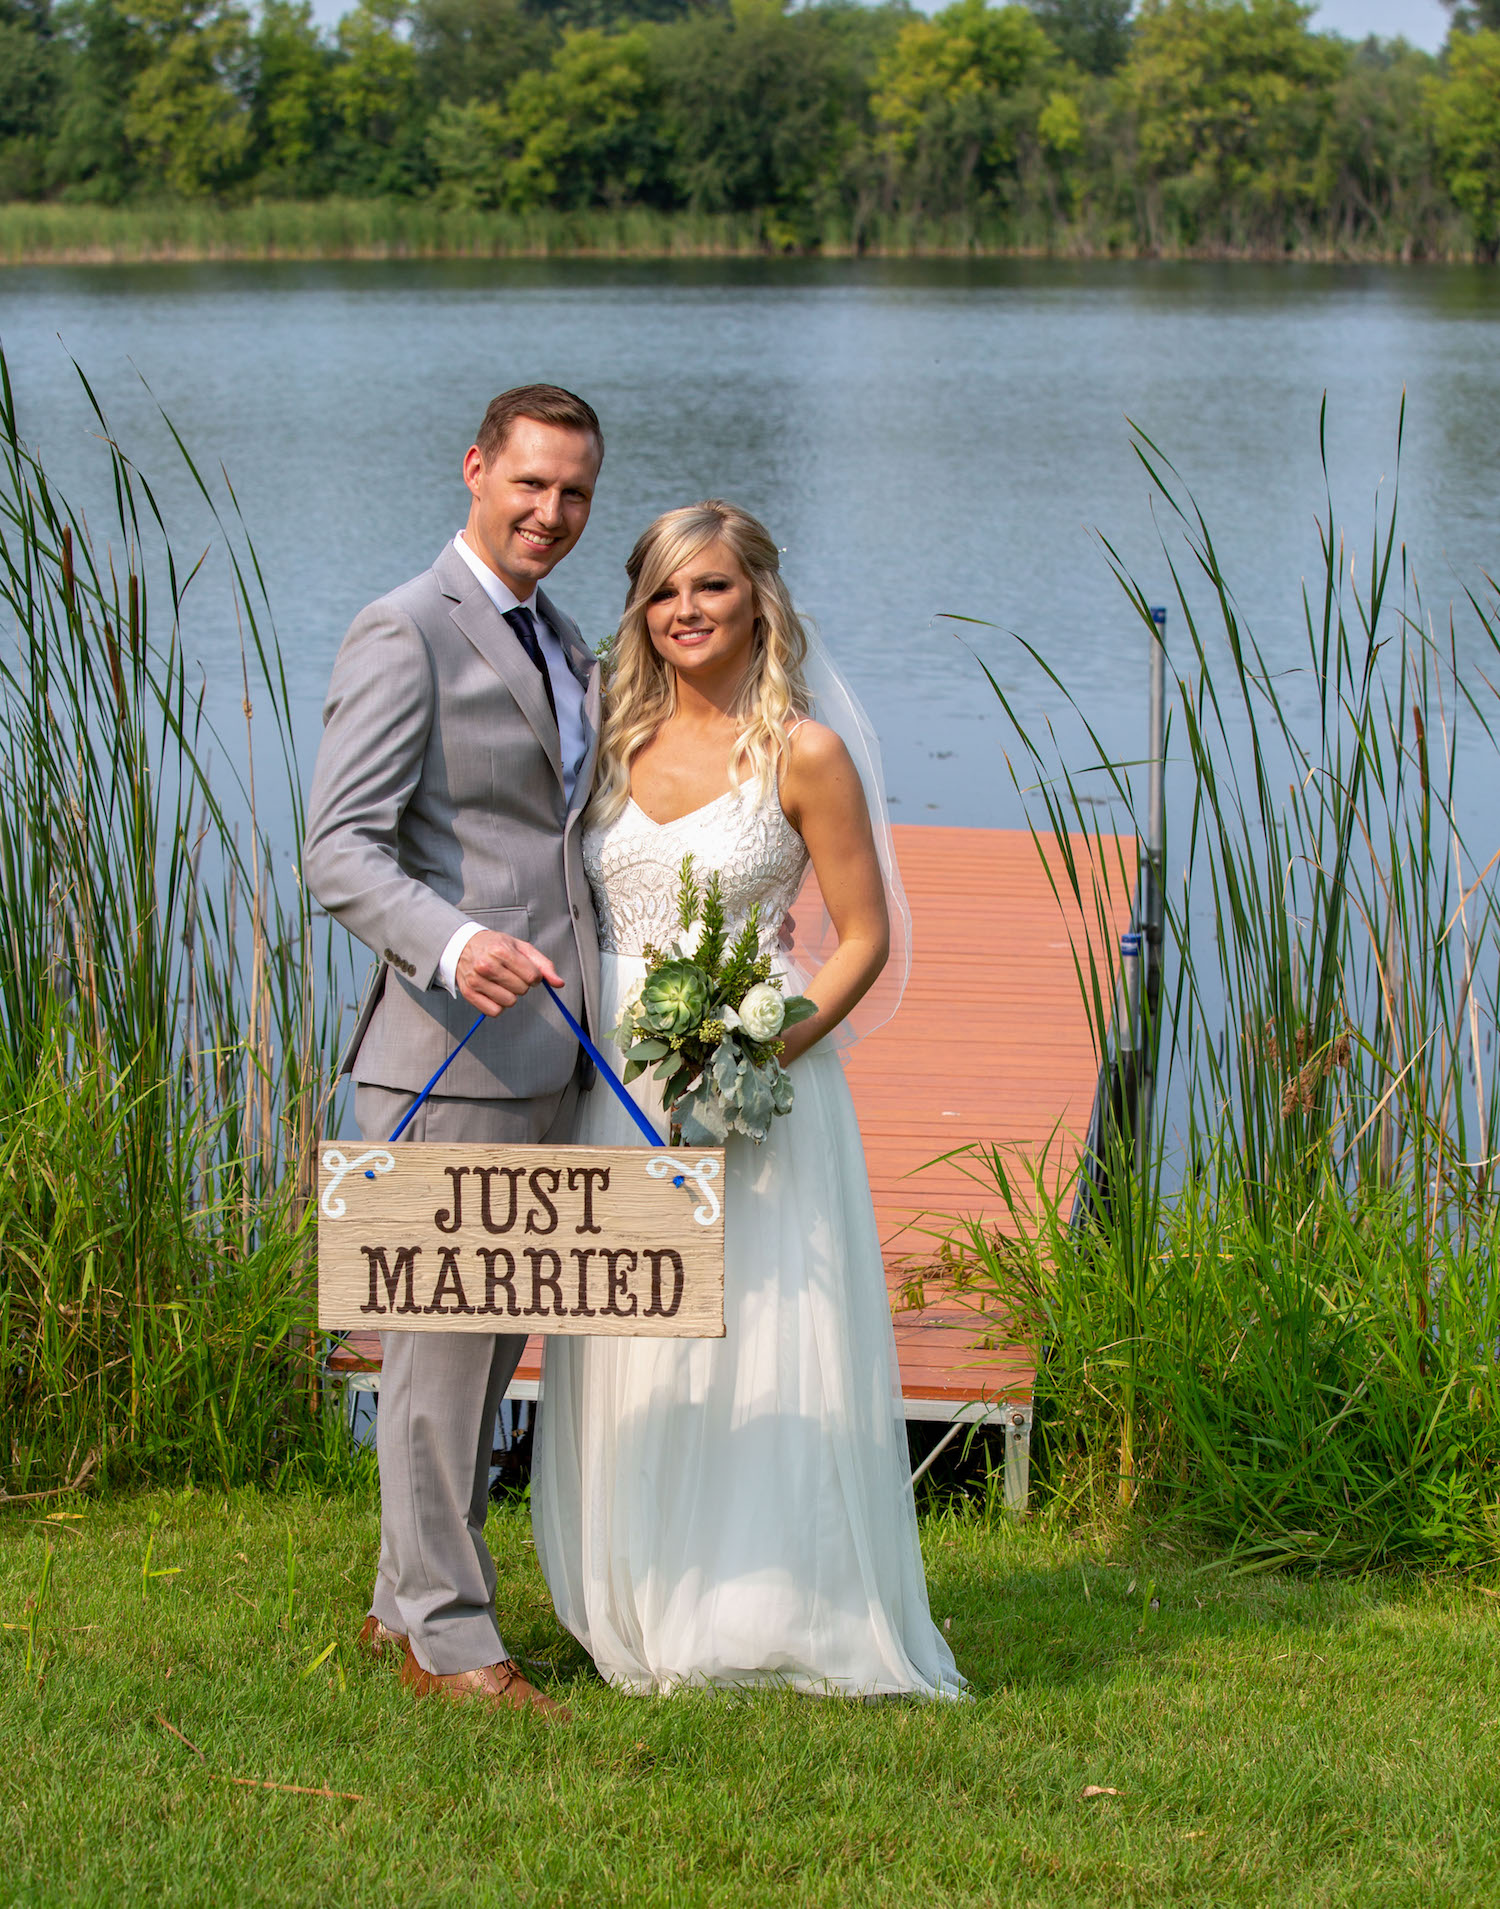 Cindyrellas Garden outdoor wedding ceremony by a private lake with wooded backdrops, just married sign